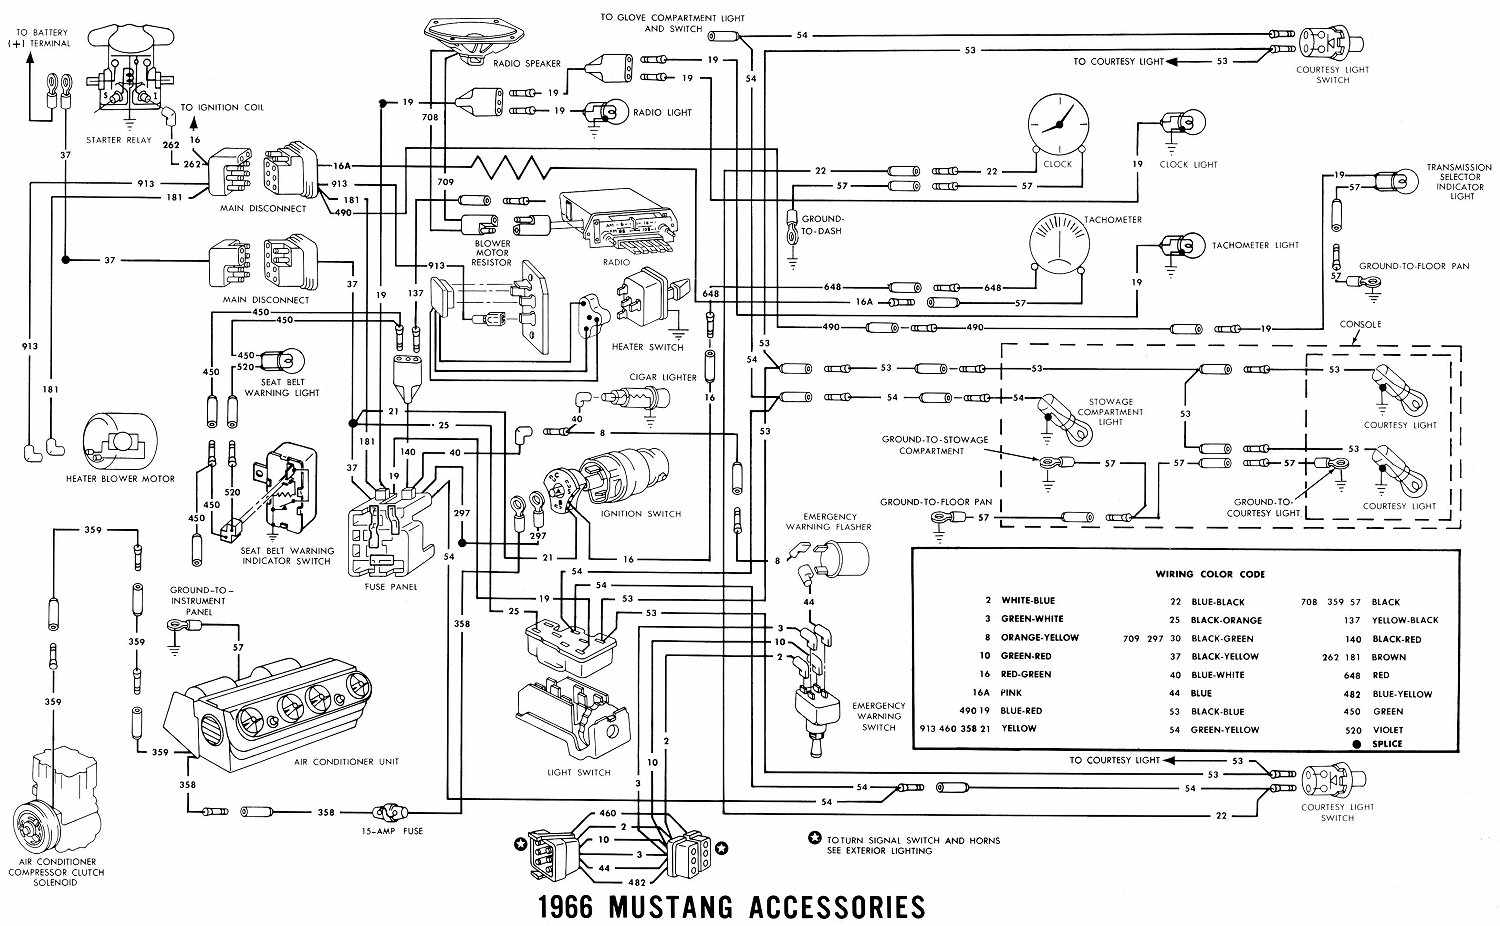 1972 datsun 1200 front fuse box diagram